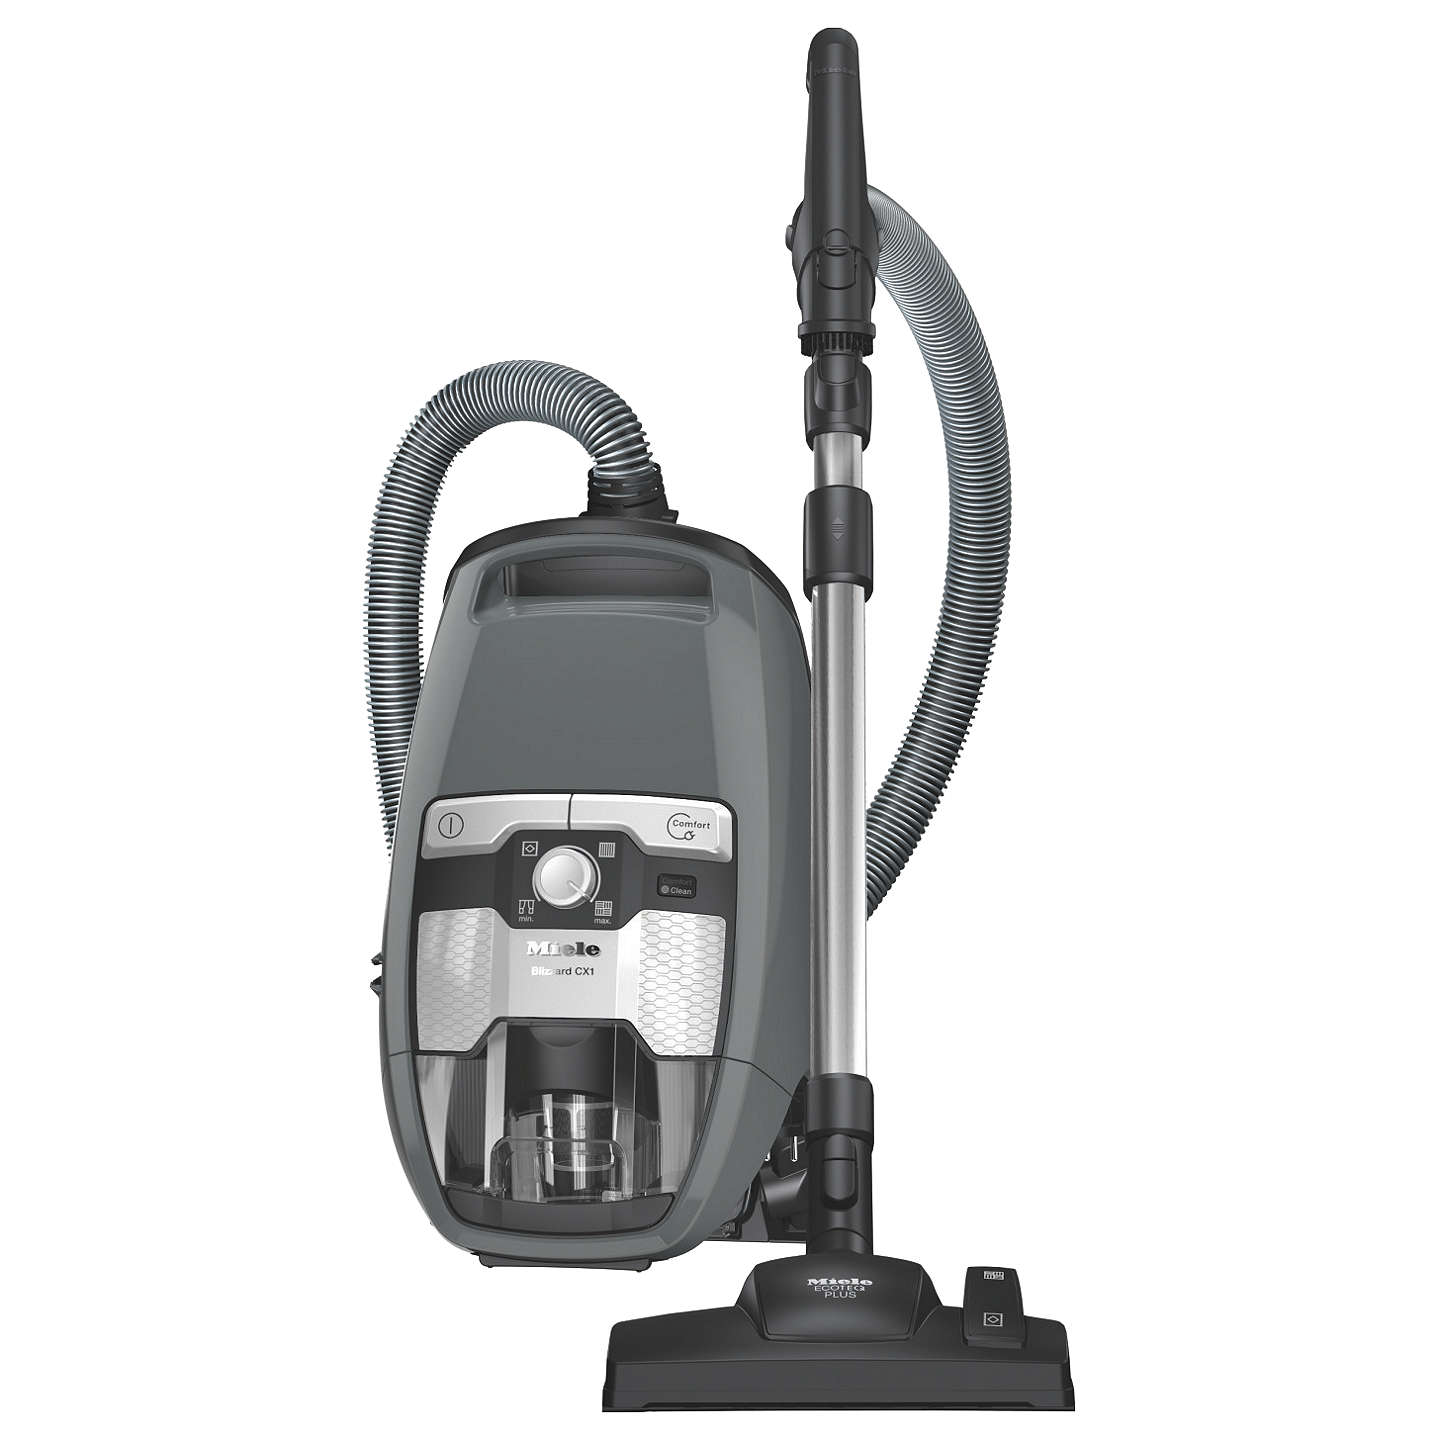 BuyMiele Blizzard CX1 Excellence Cylinder Vacuum Cleaner, Graphite Grey Online at johnlewis.com